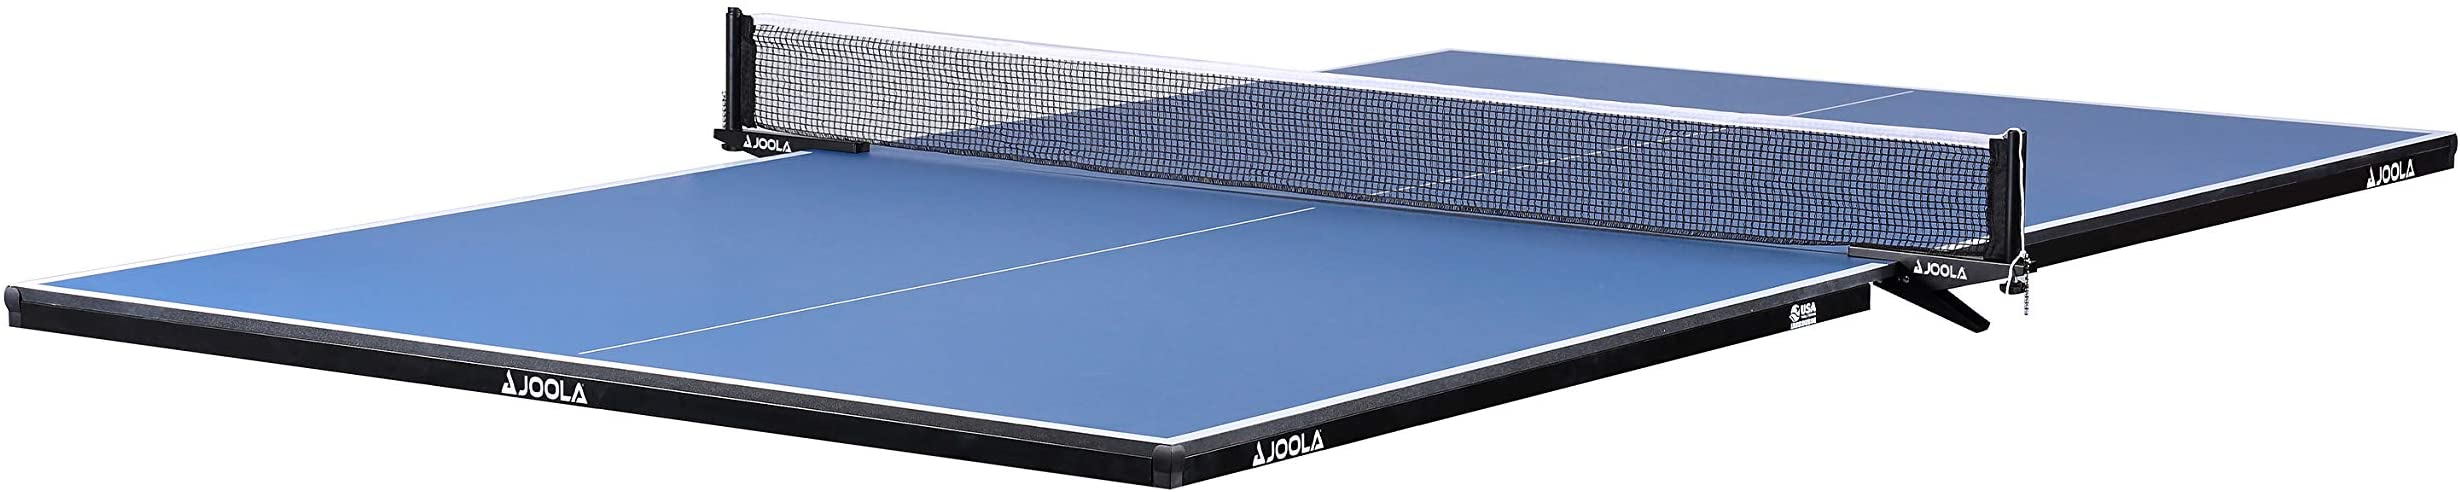 JOOLA Regulation Table Tennis Conversion Top with Foam Backing and Net Set - Full Sized MDF Ping Pong Table Top for Pool Table - Quick and Easy Assembly - Foam Backing to Protect Billiard Table